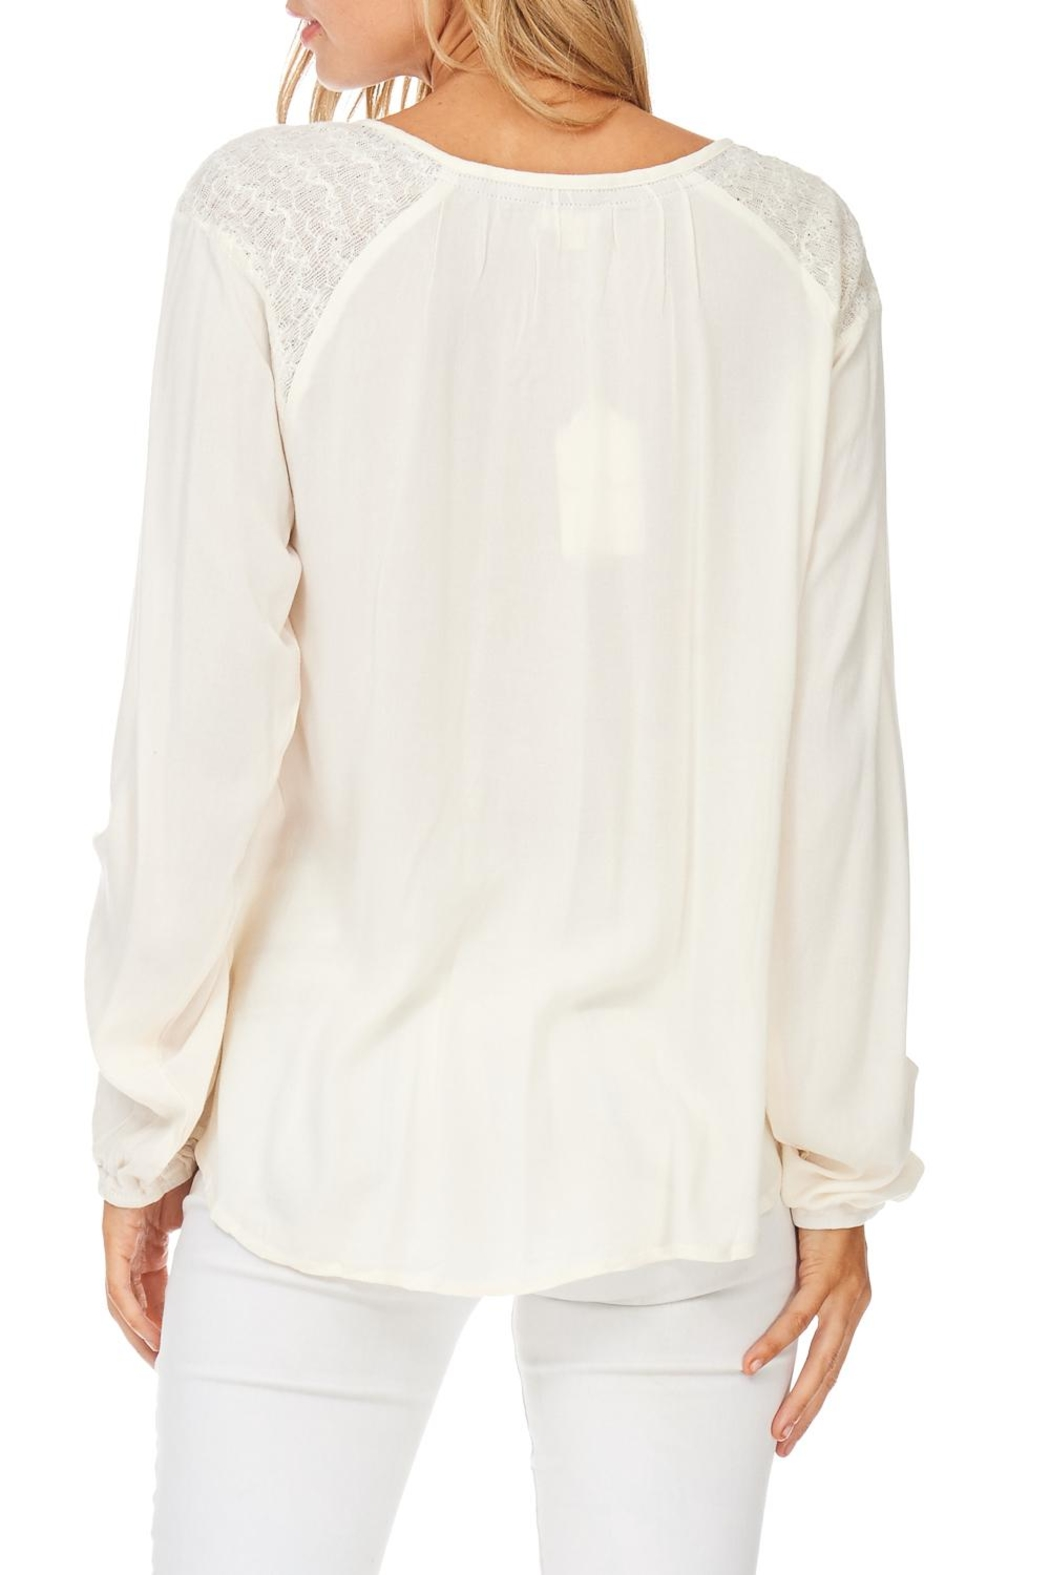 Hem & Thread Embroidered Peasant Top - Front Full Image